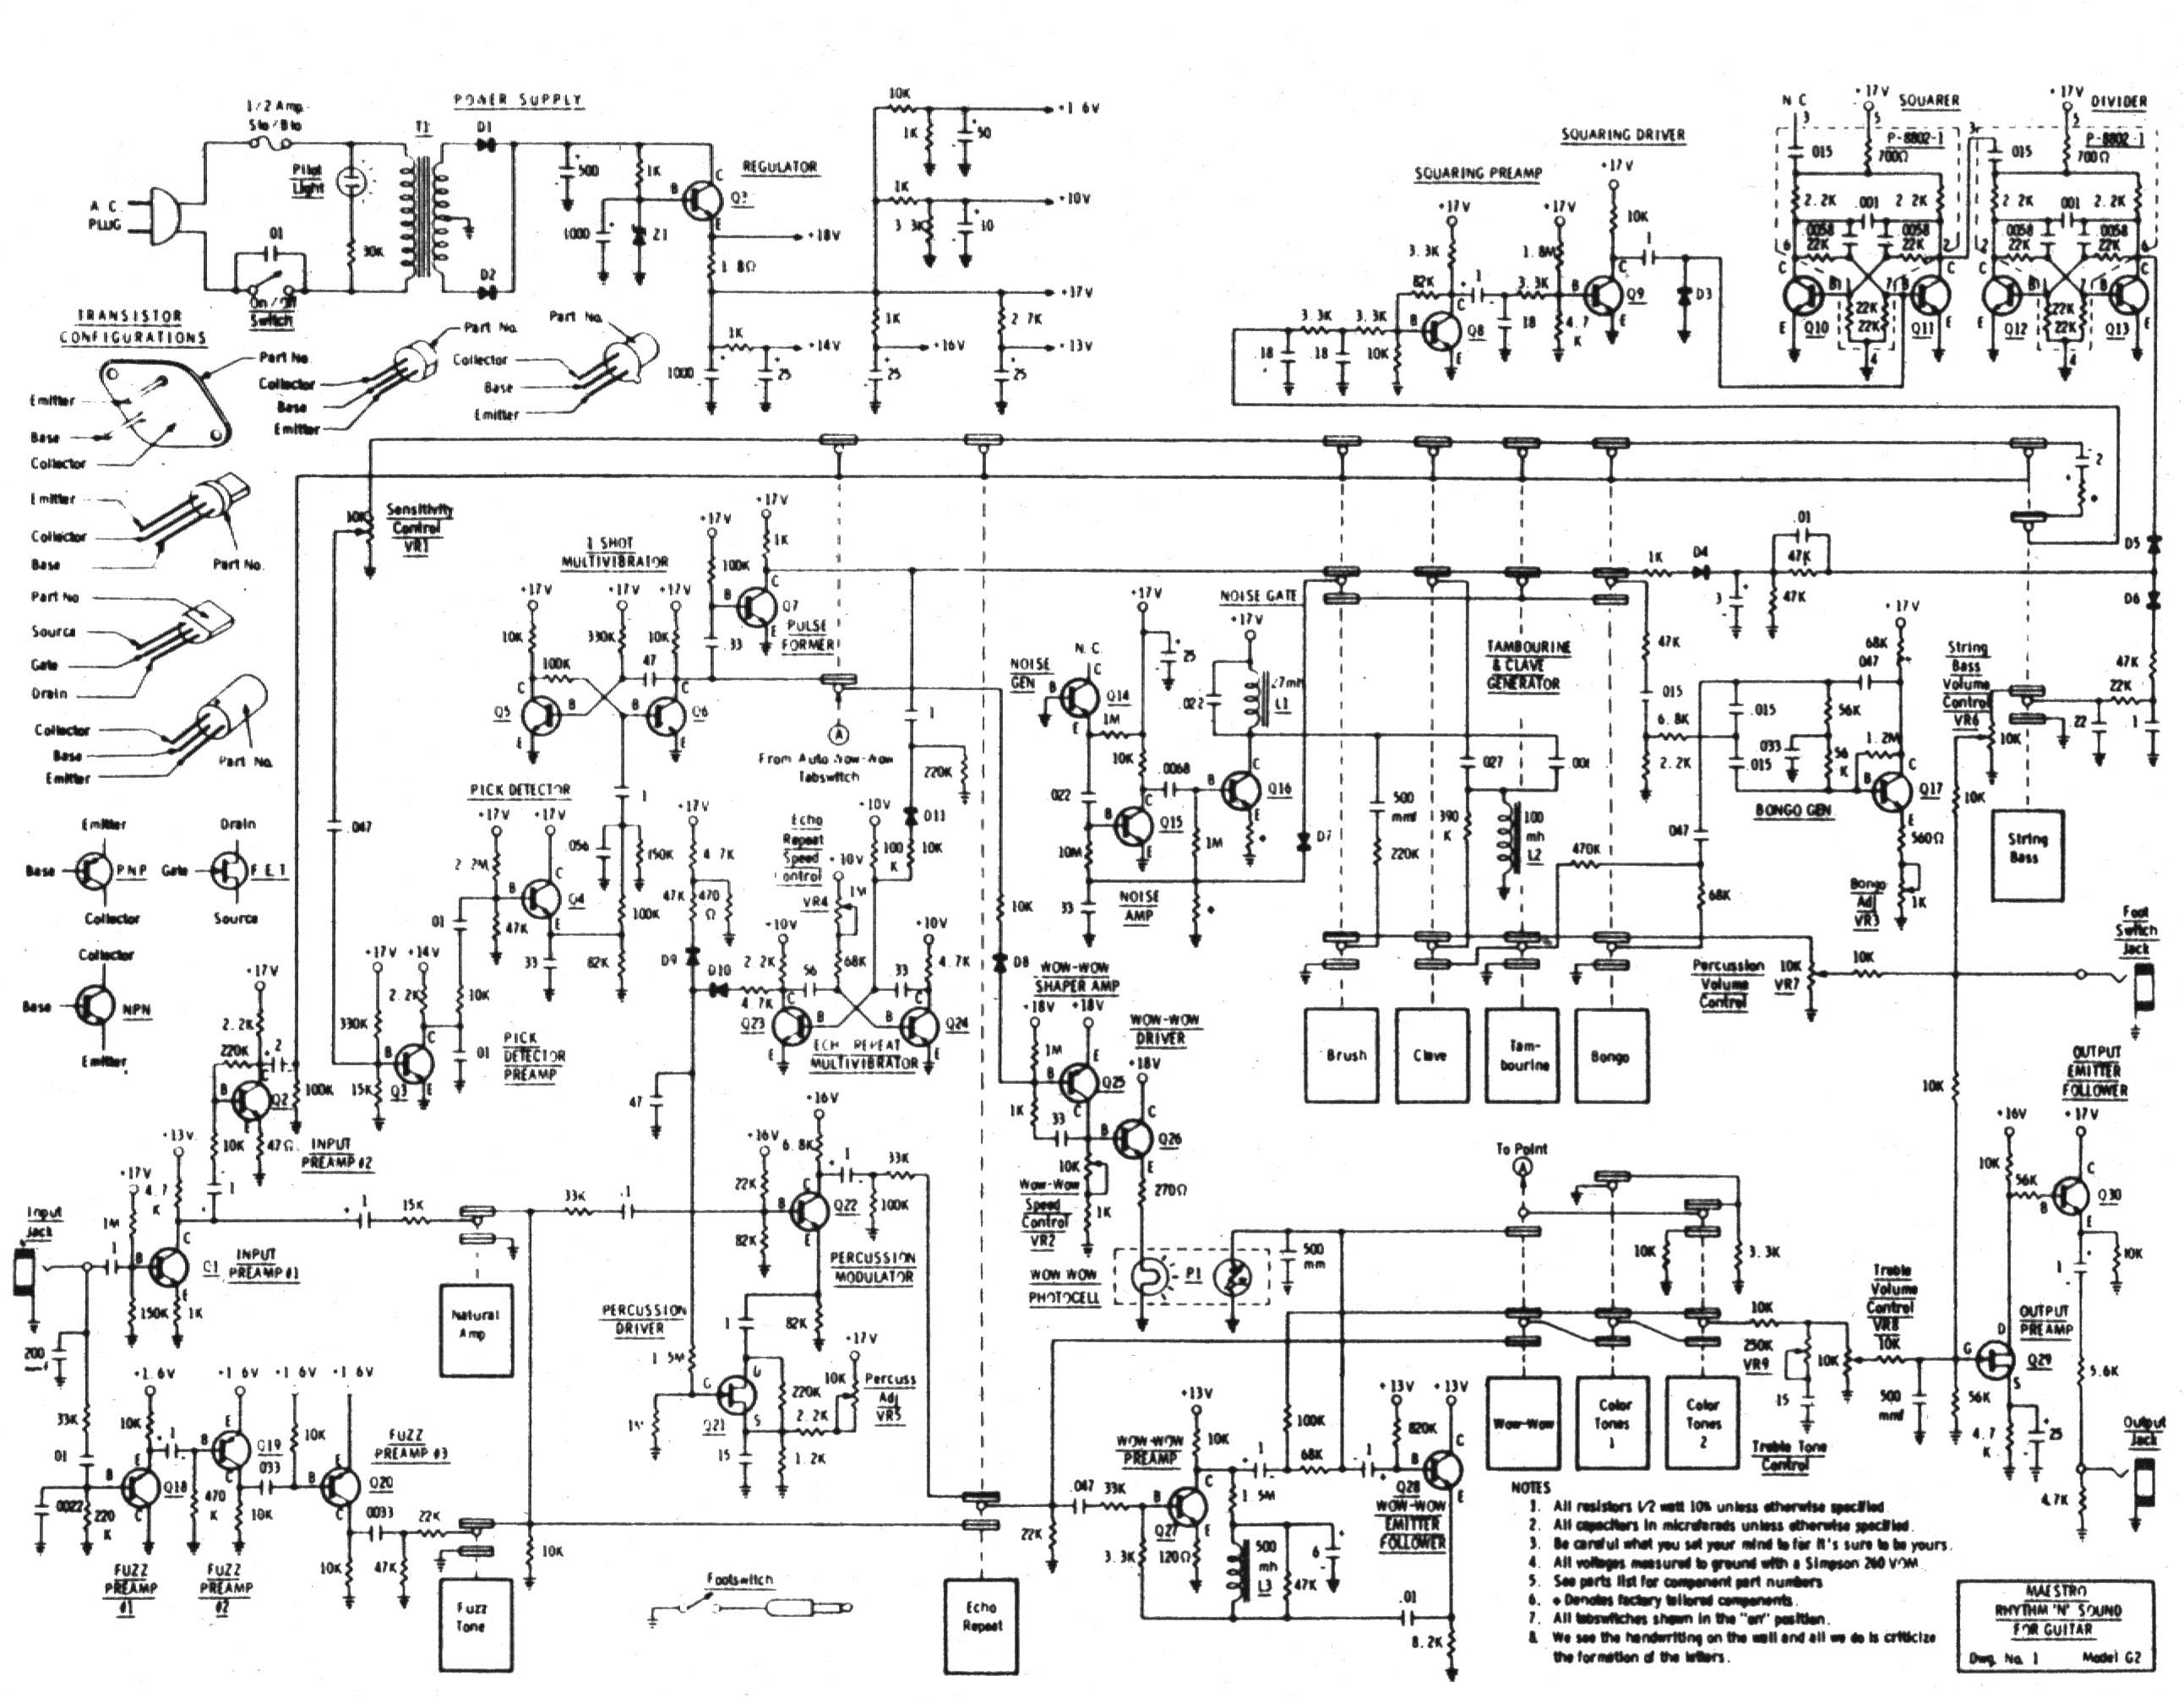 Maestro G on Moog Theremin Schematic